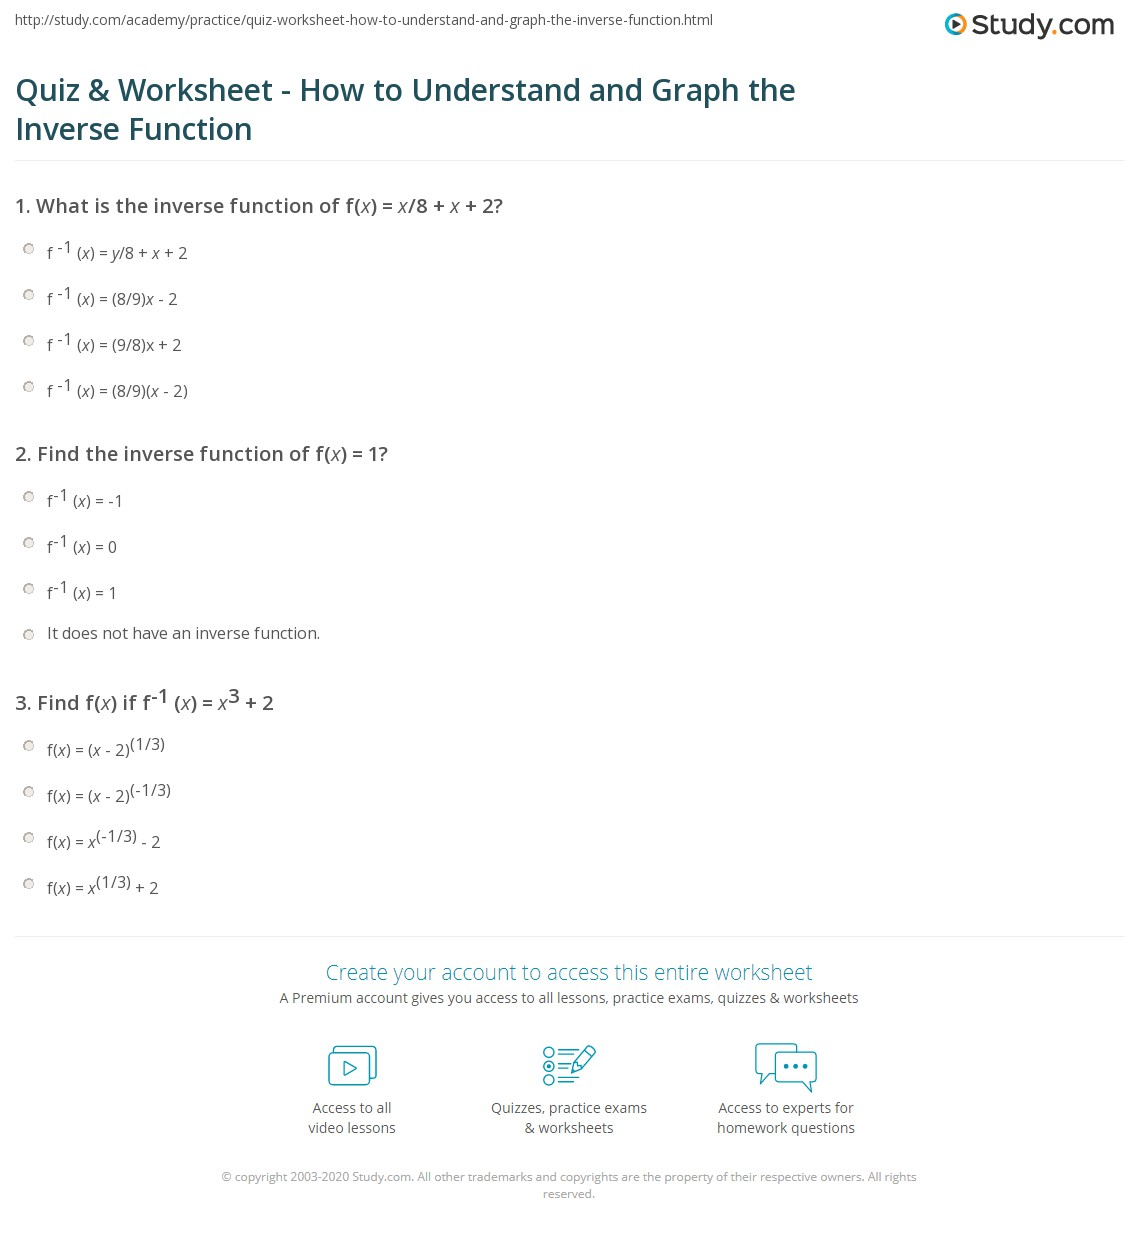 Worksheets Inverse Function Worksheet quiz worksheet how to understand and graph the inverse print understanding graphing function worksheet